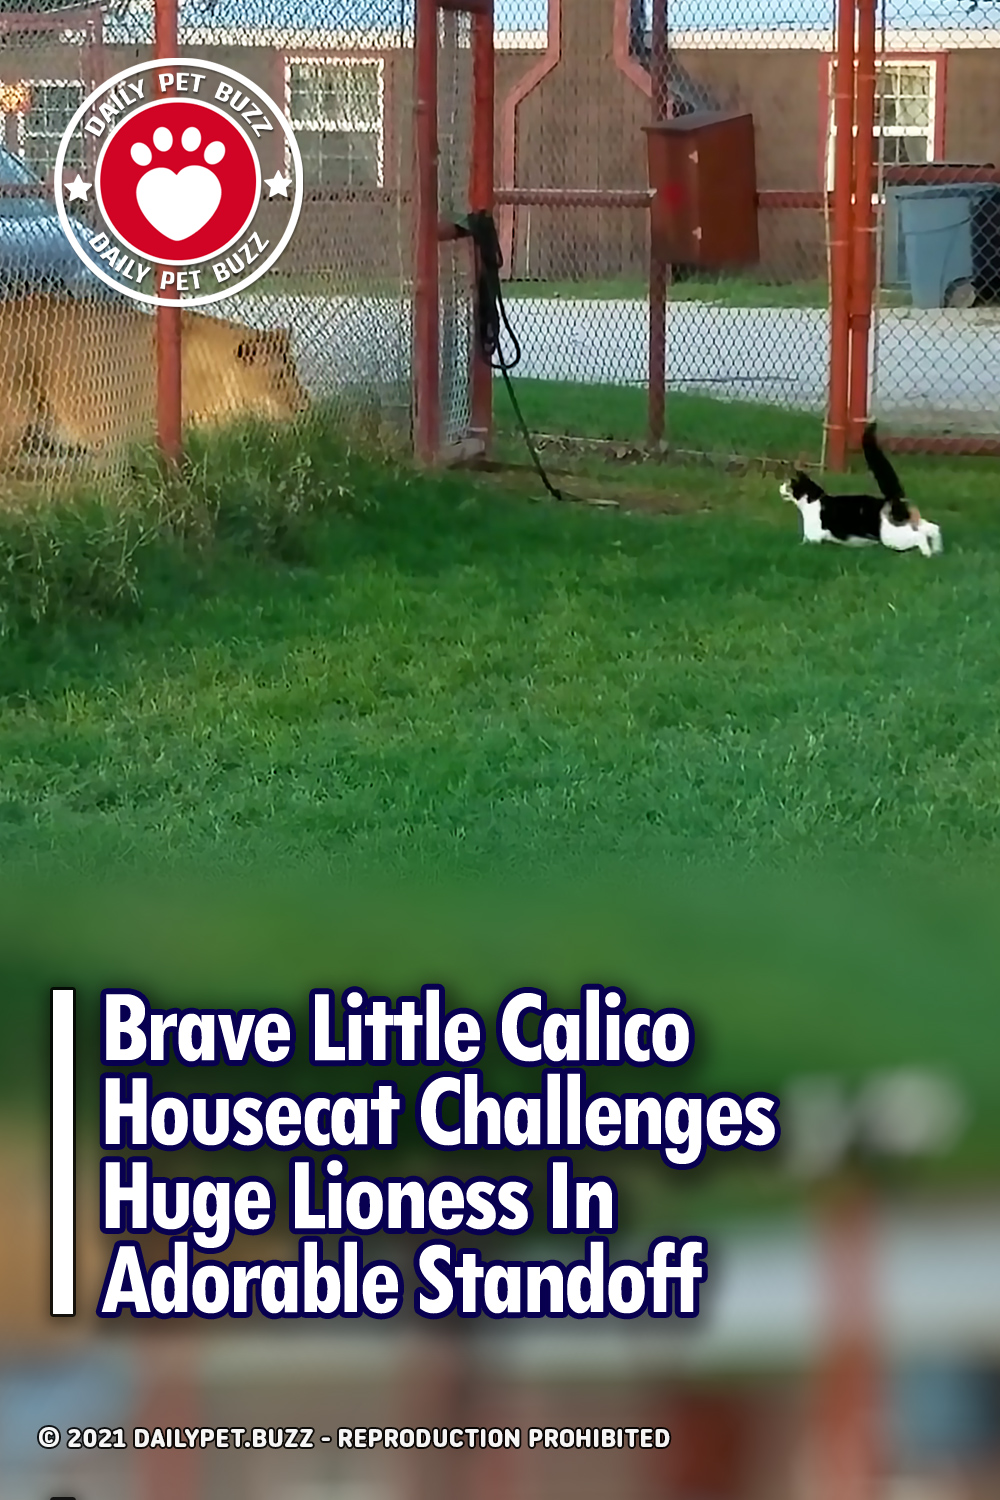 Brave Little Calico Housecat Challenges Huge Lioness In Adorable Standoff